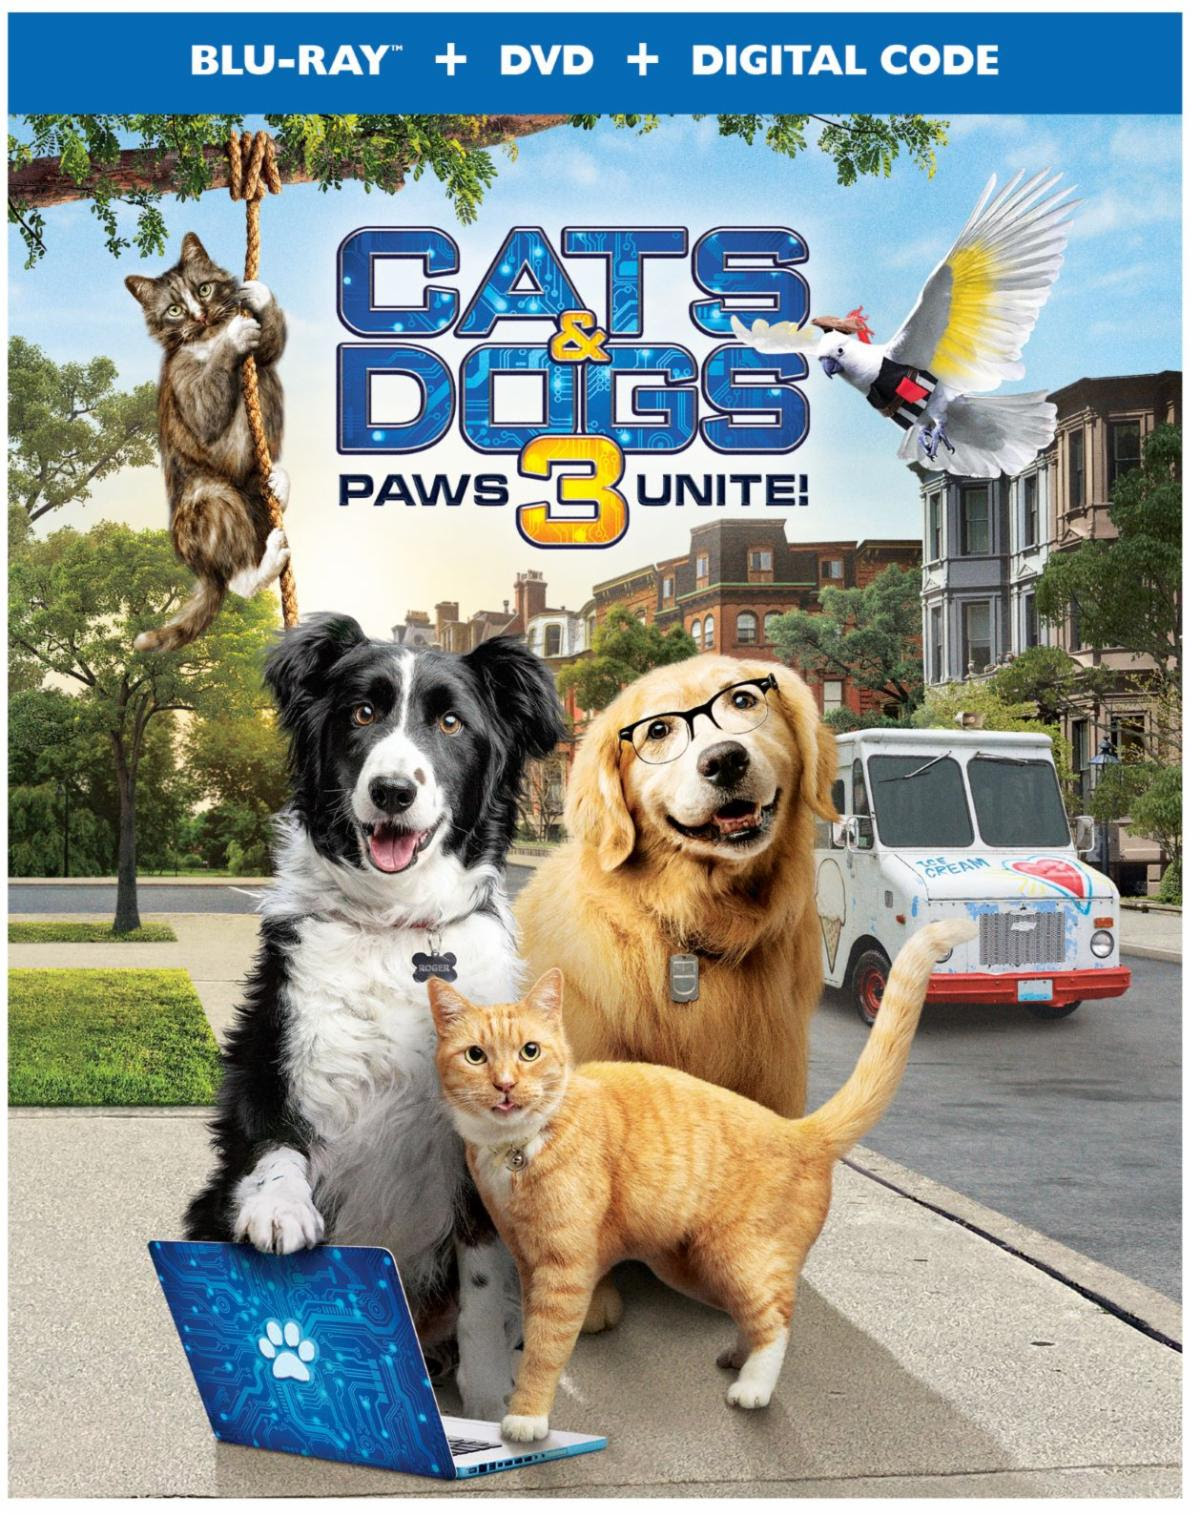 Cats & Dogs 3: Paws Unite Available On Digital Now